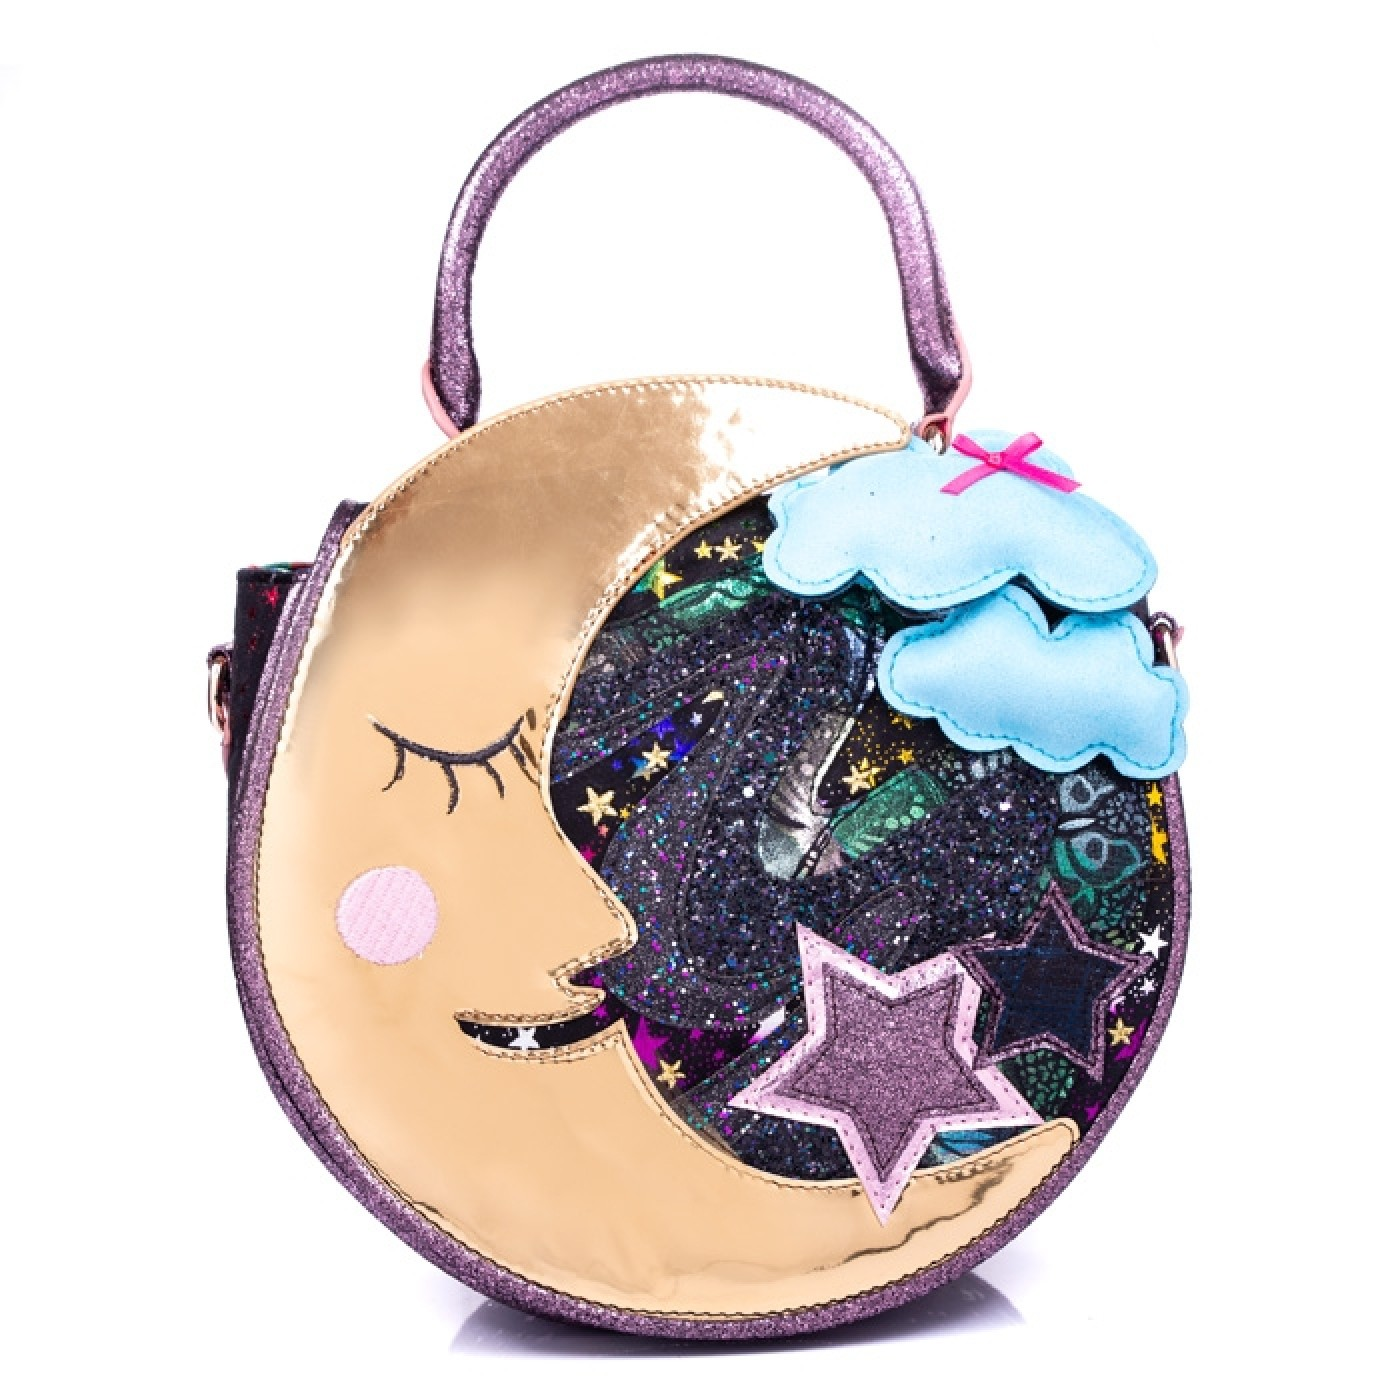 Astronaughty bag